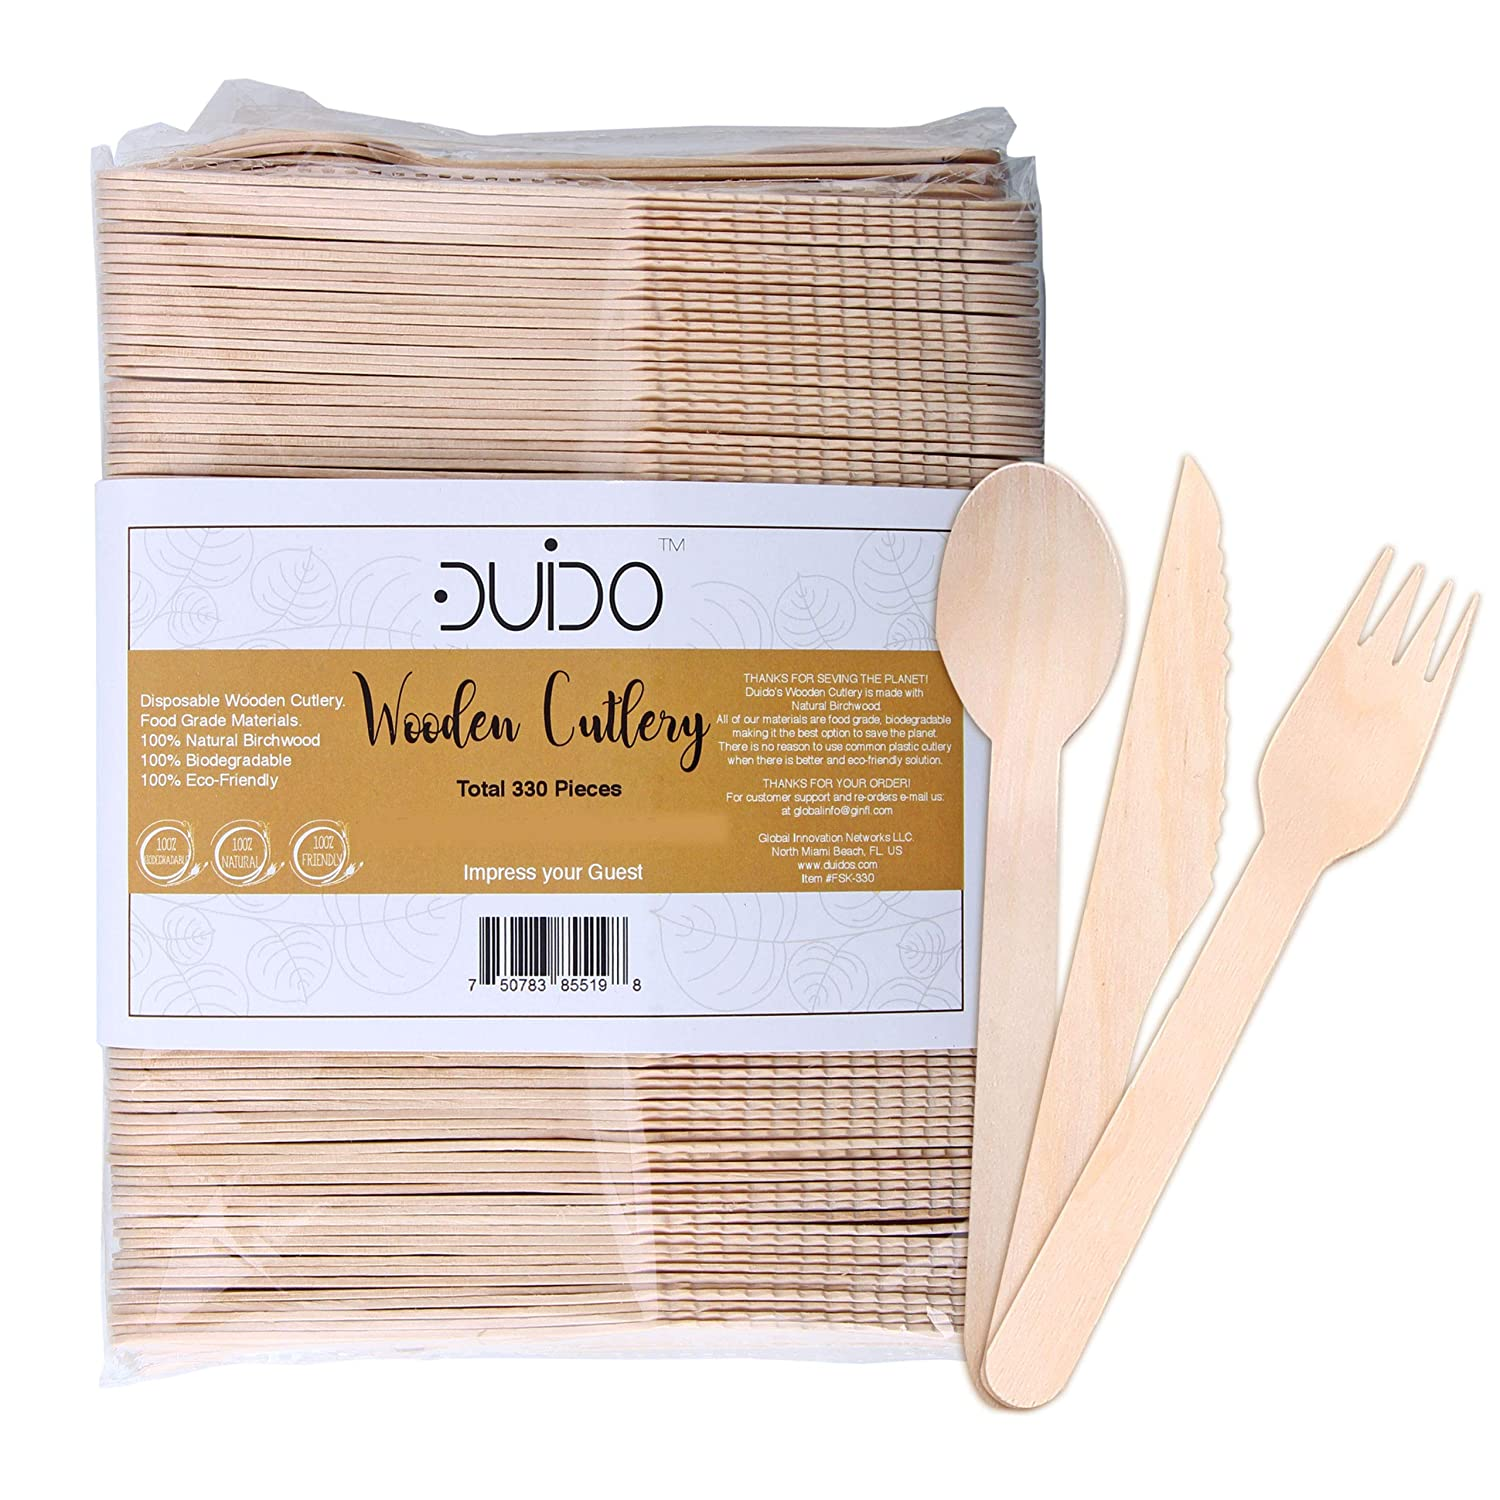 Biodegradable Disposable Wooden Cutlery Utensils – (Pack of 275) 110 Forks 55 Knives 110 Spoons 5.5-inch Set Eco-Friendly Compostable and Disposable Silverware Kit Party Supplies Events